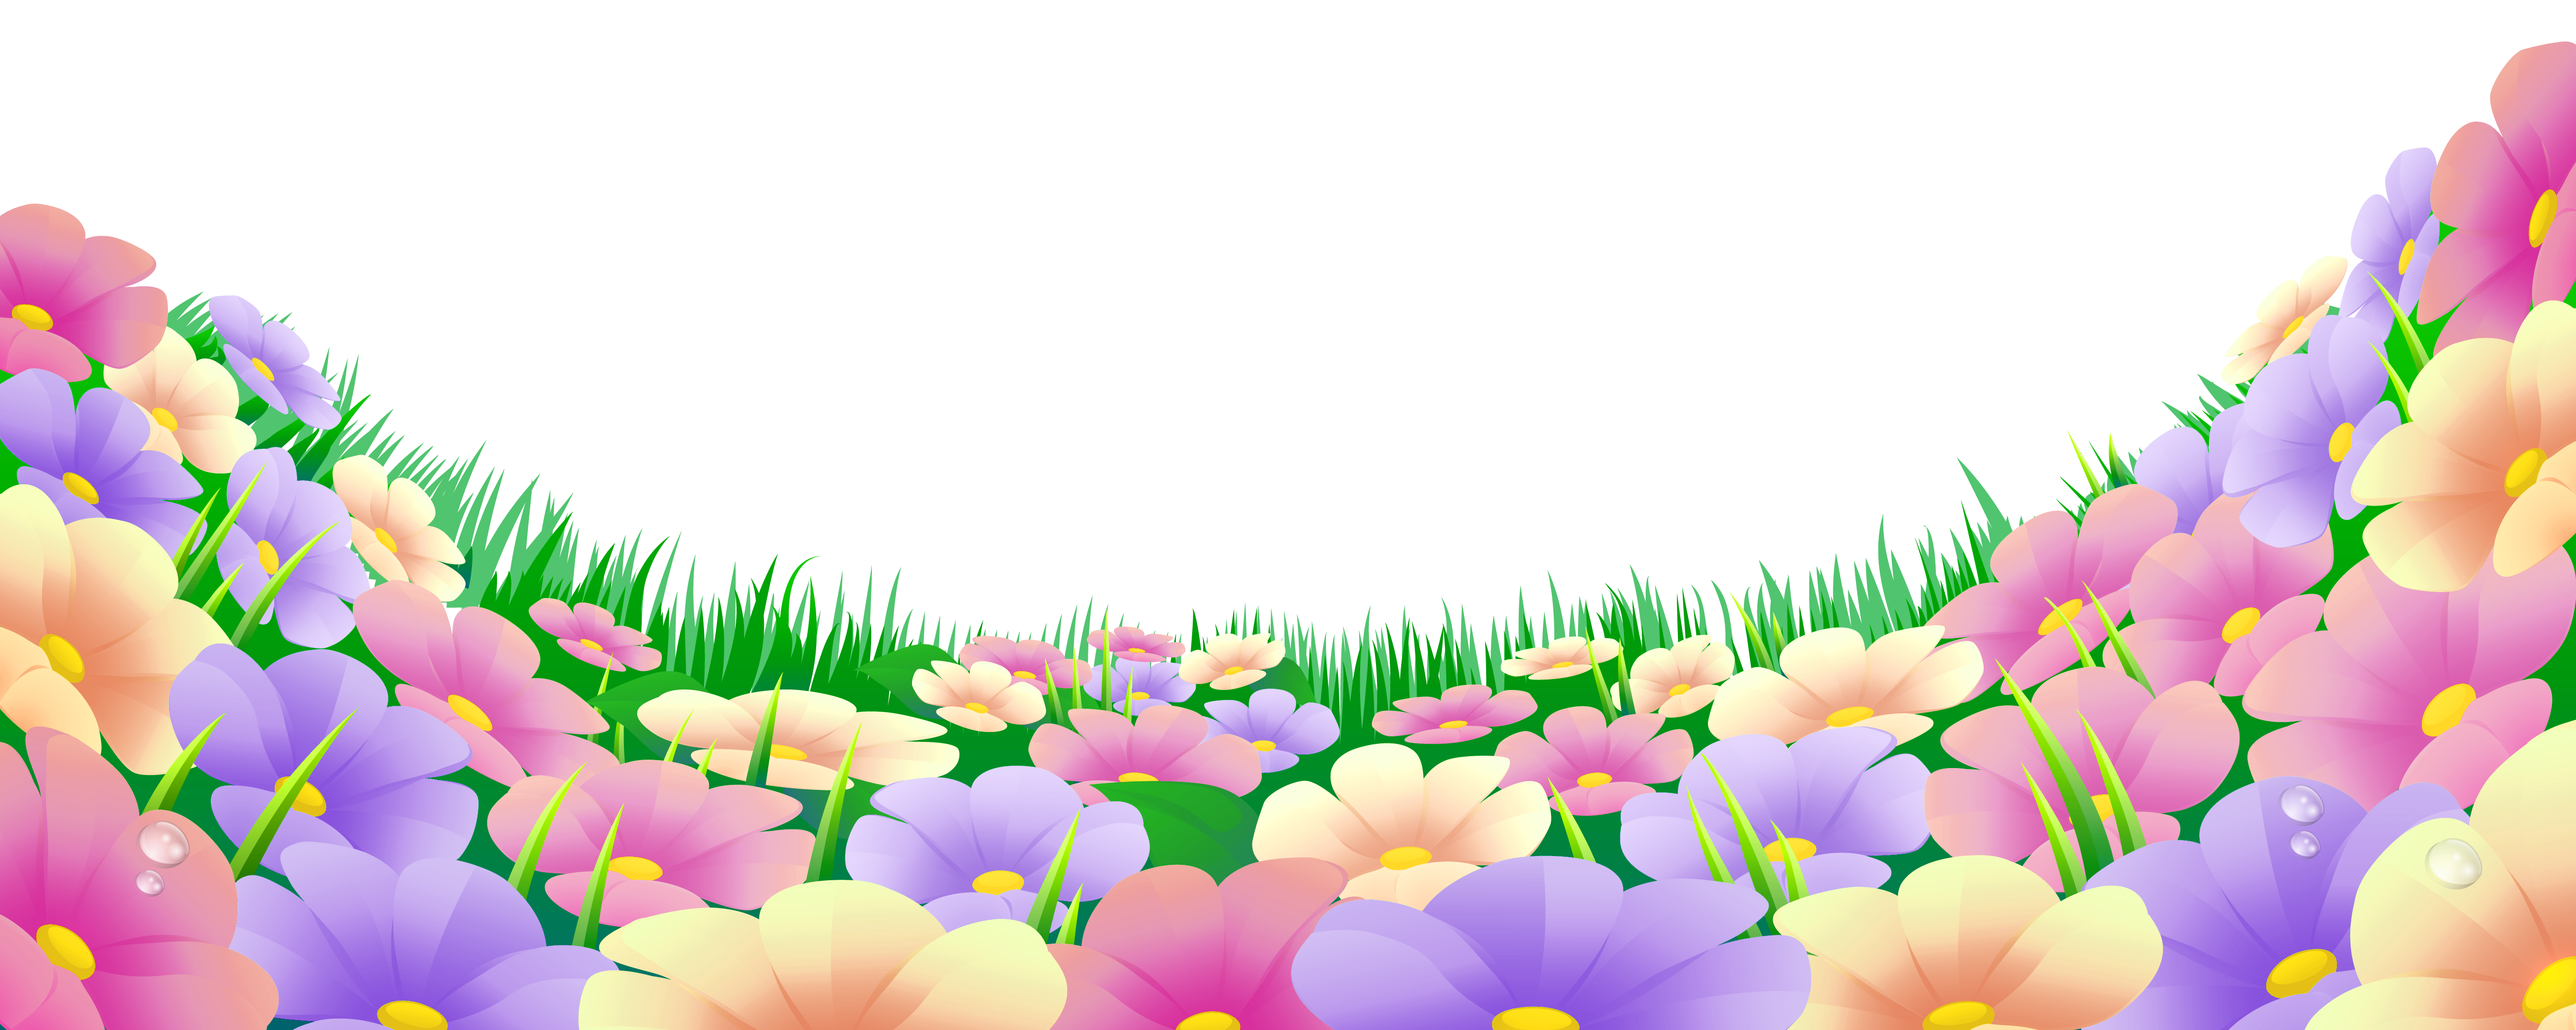 Flowers png clipart. Grass with beautiful download